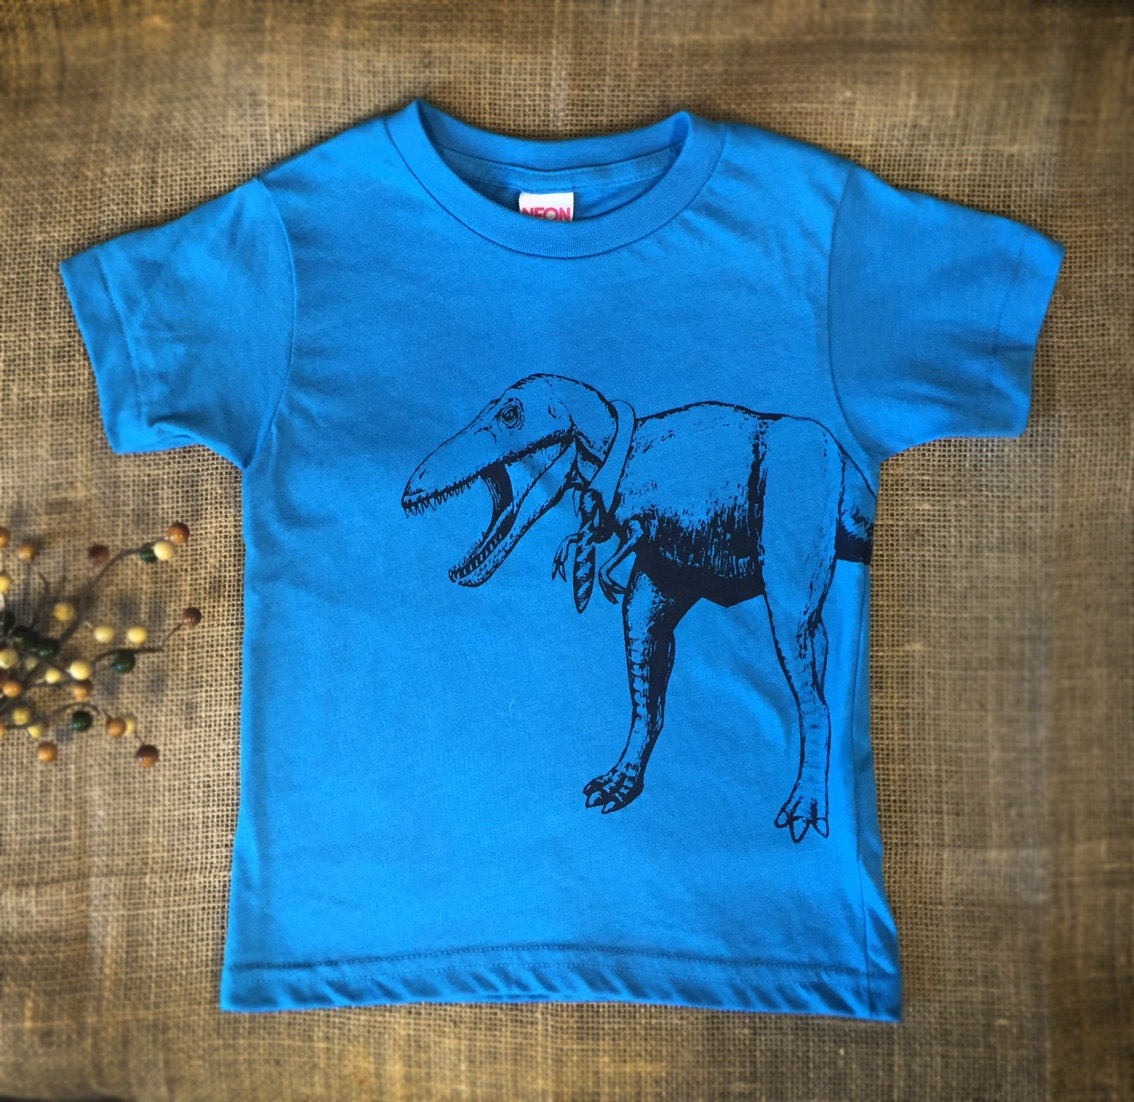 Shop for popular Dinosaur T-Shirts Online in various designs and graphics at The Mountain, America's greenest t-shirt company!